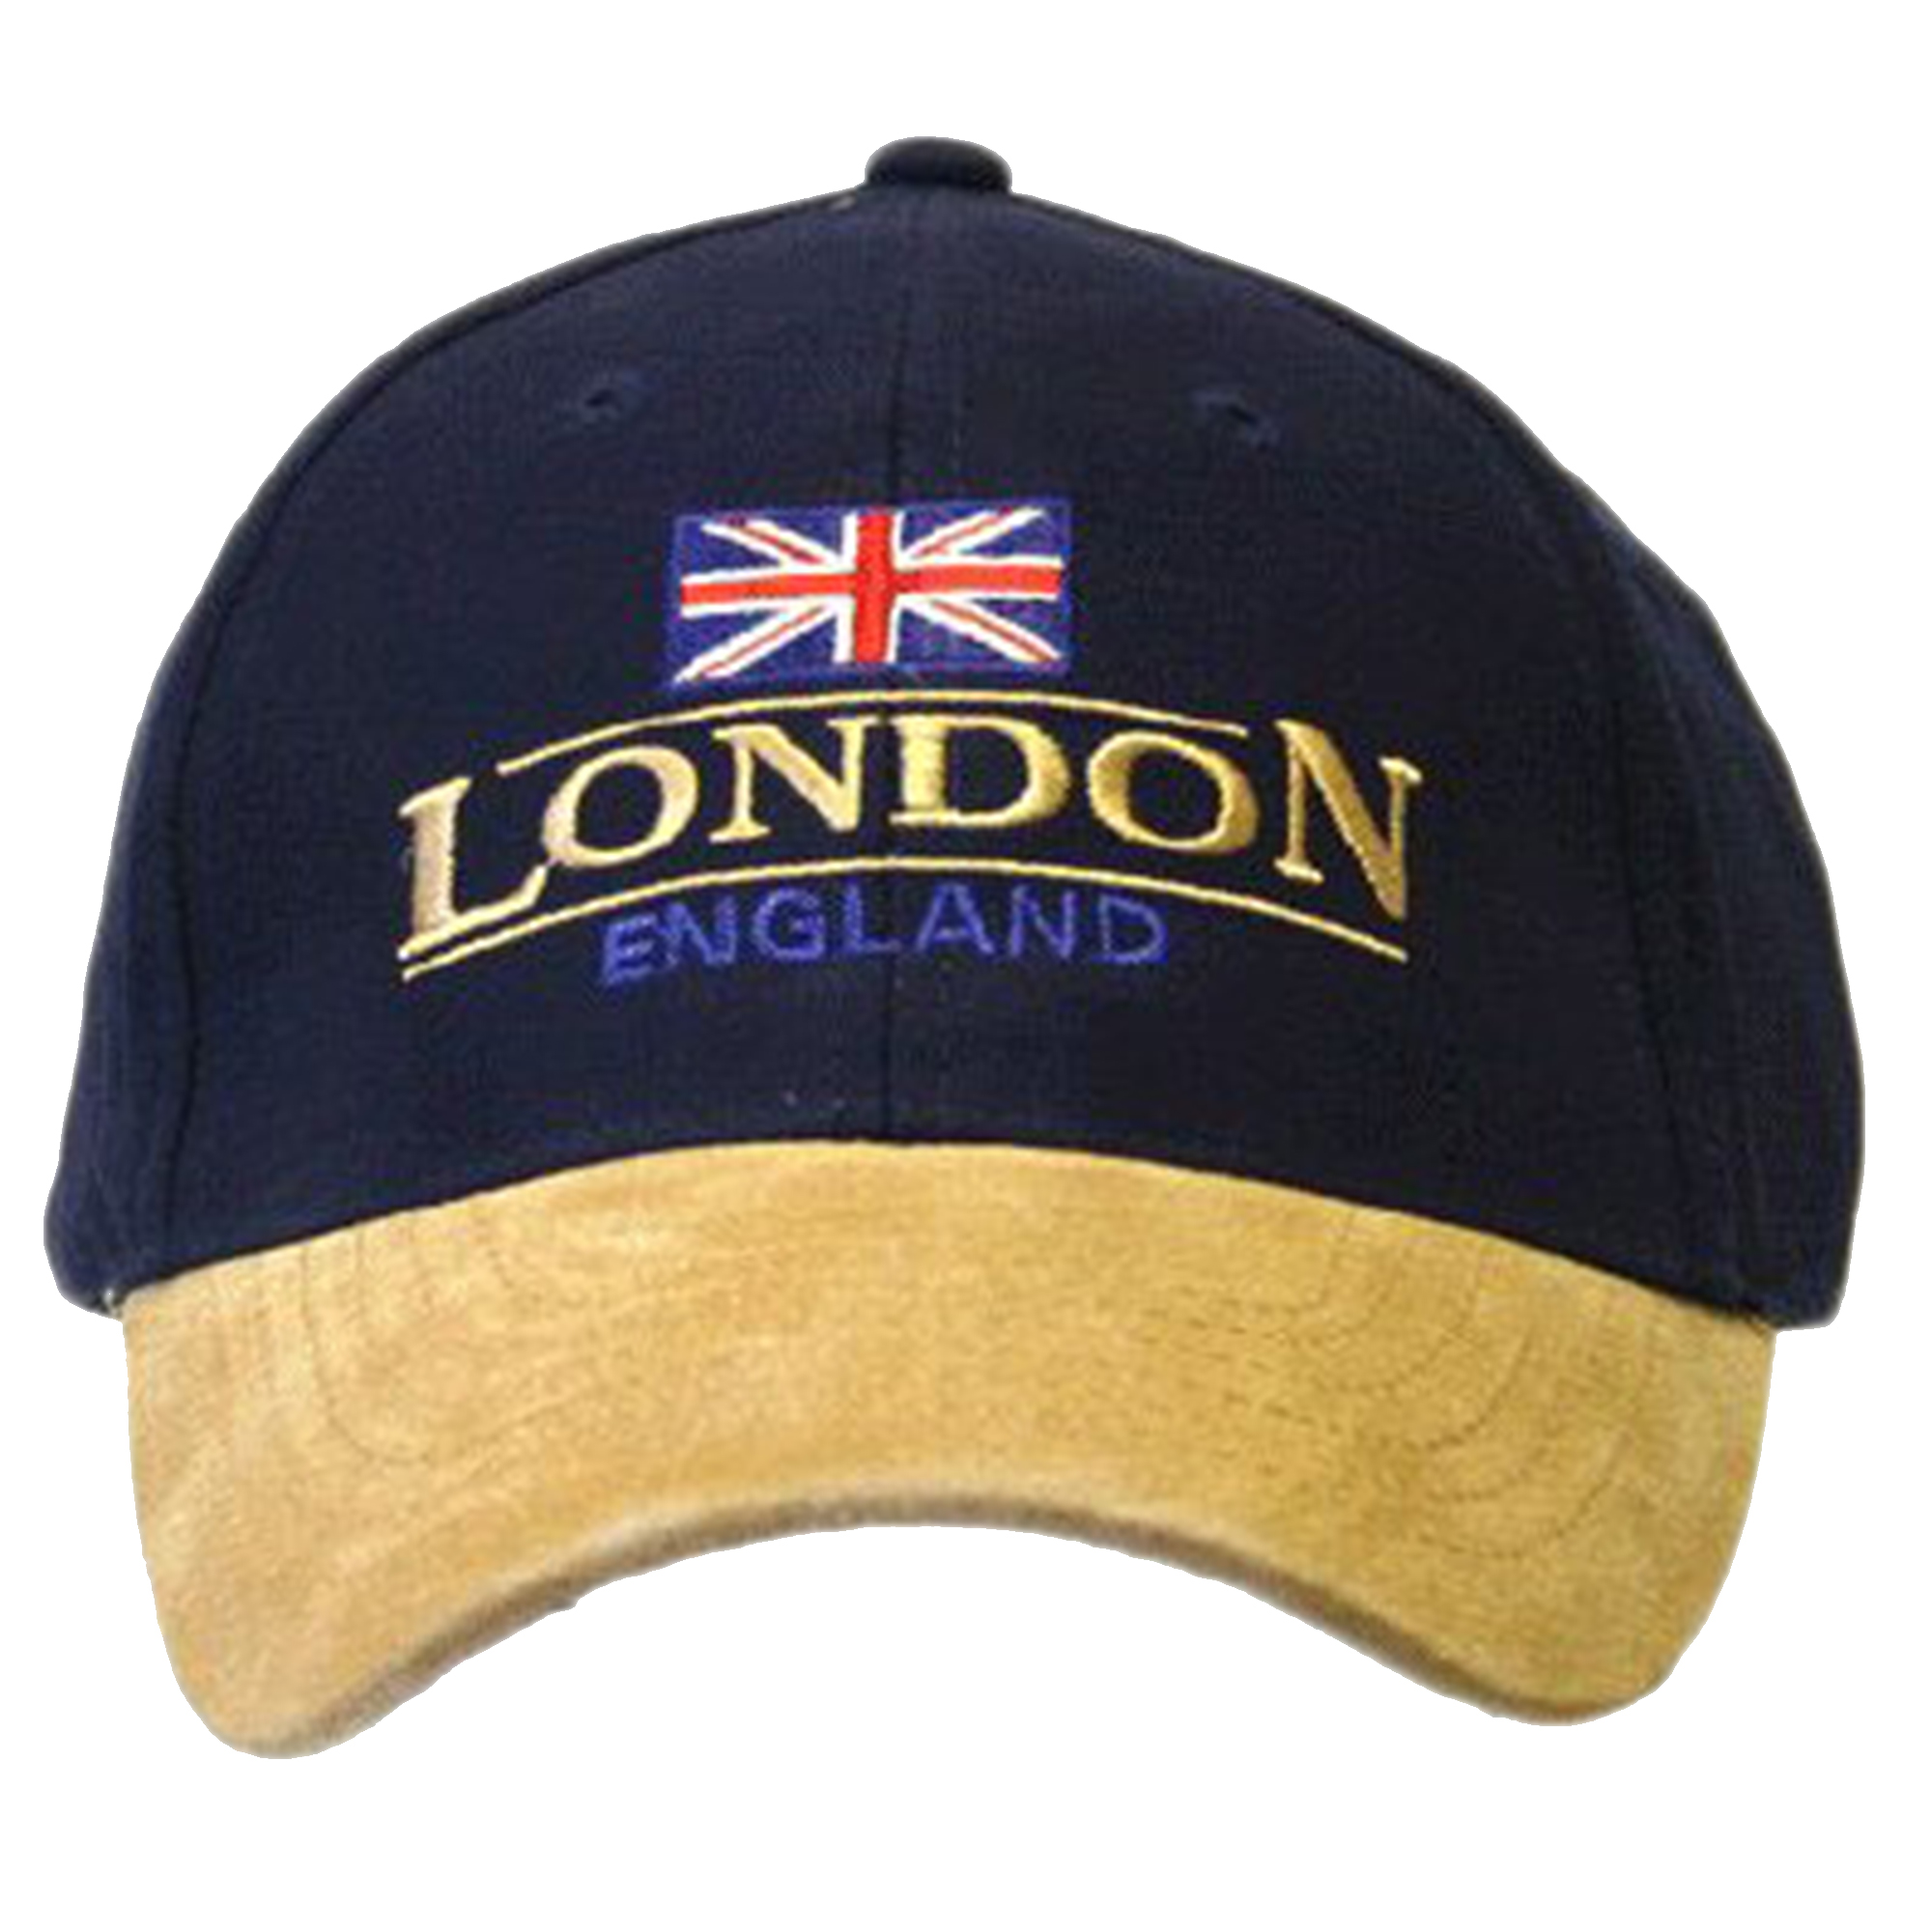 08f4bcad4a968 London England Baseball Cap Suede Cap with adjustable strap (C330 ...